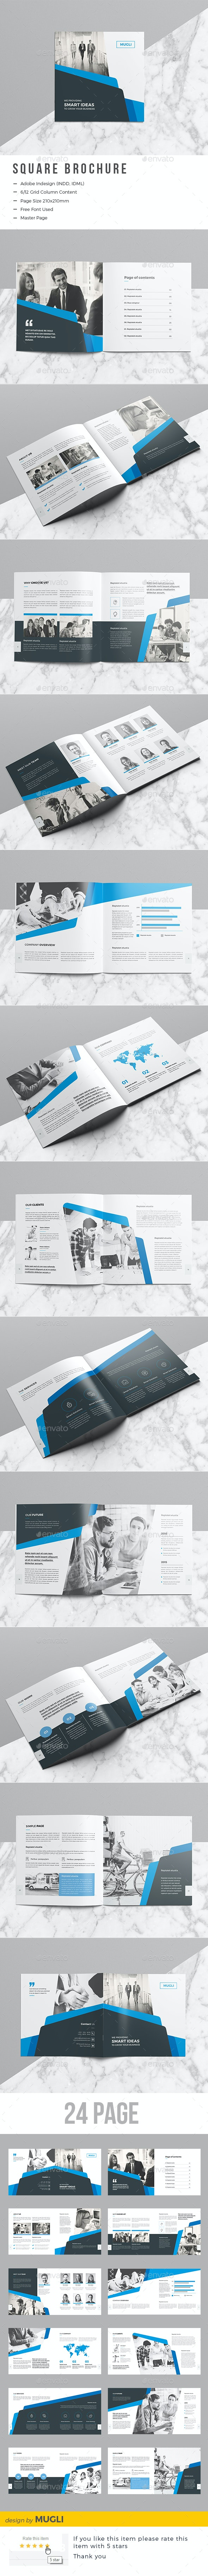 The Square Brochure - Corporate Brochures